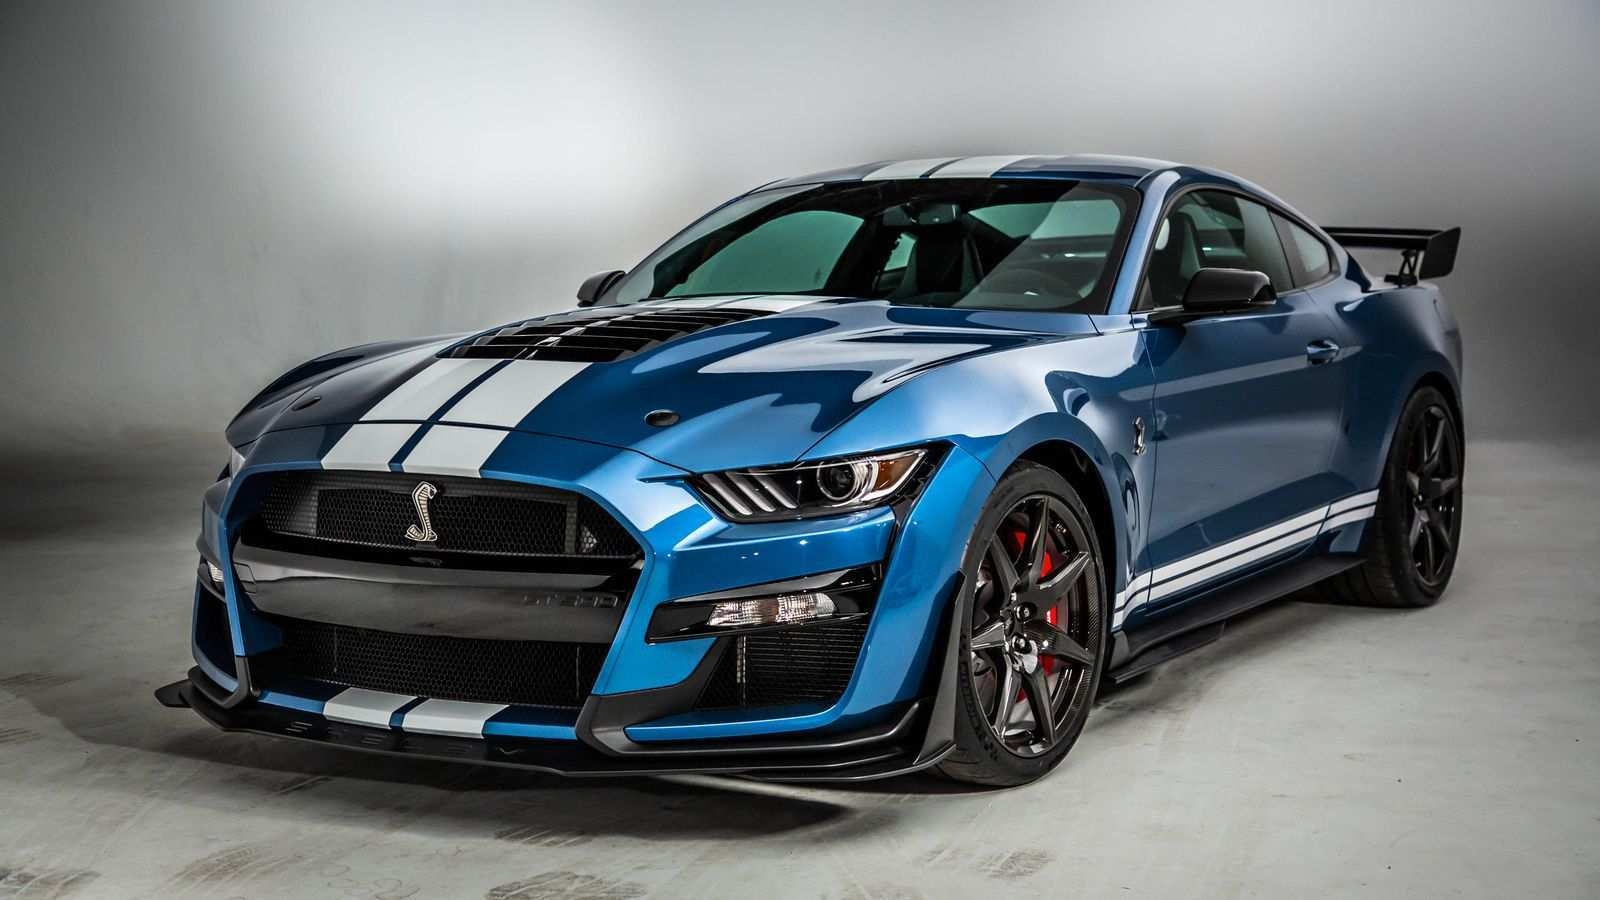 69 The 2020 Mustang Shelby Gt350 New Concept